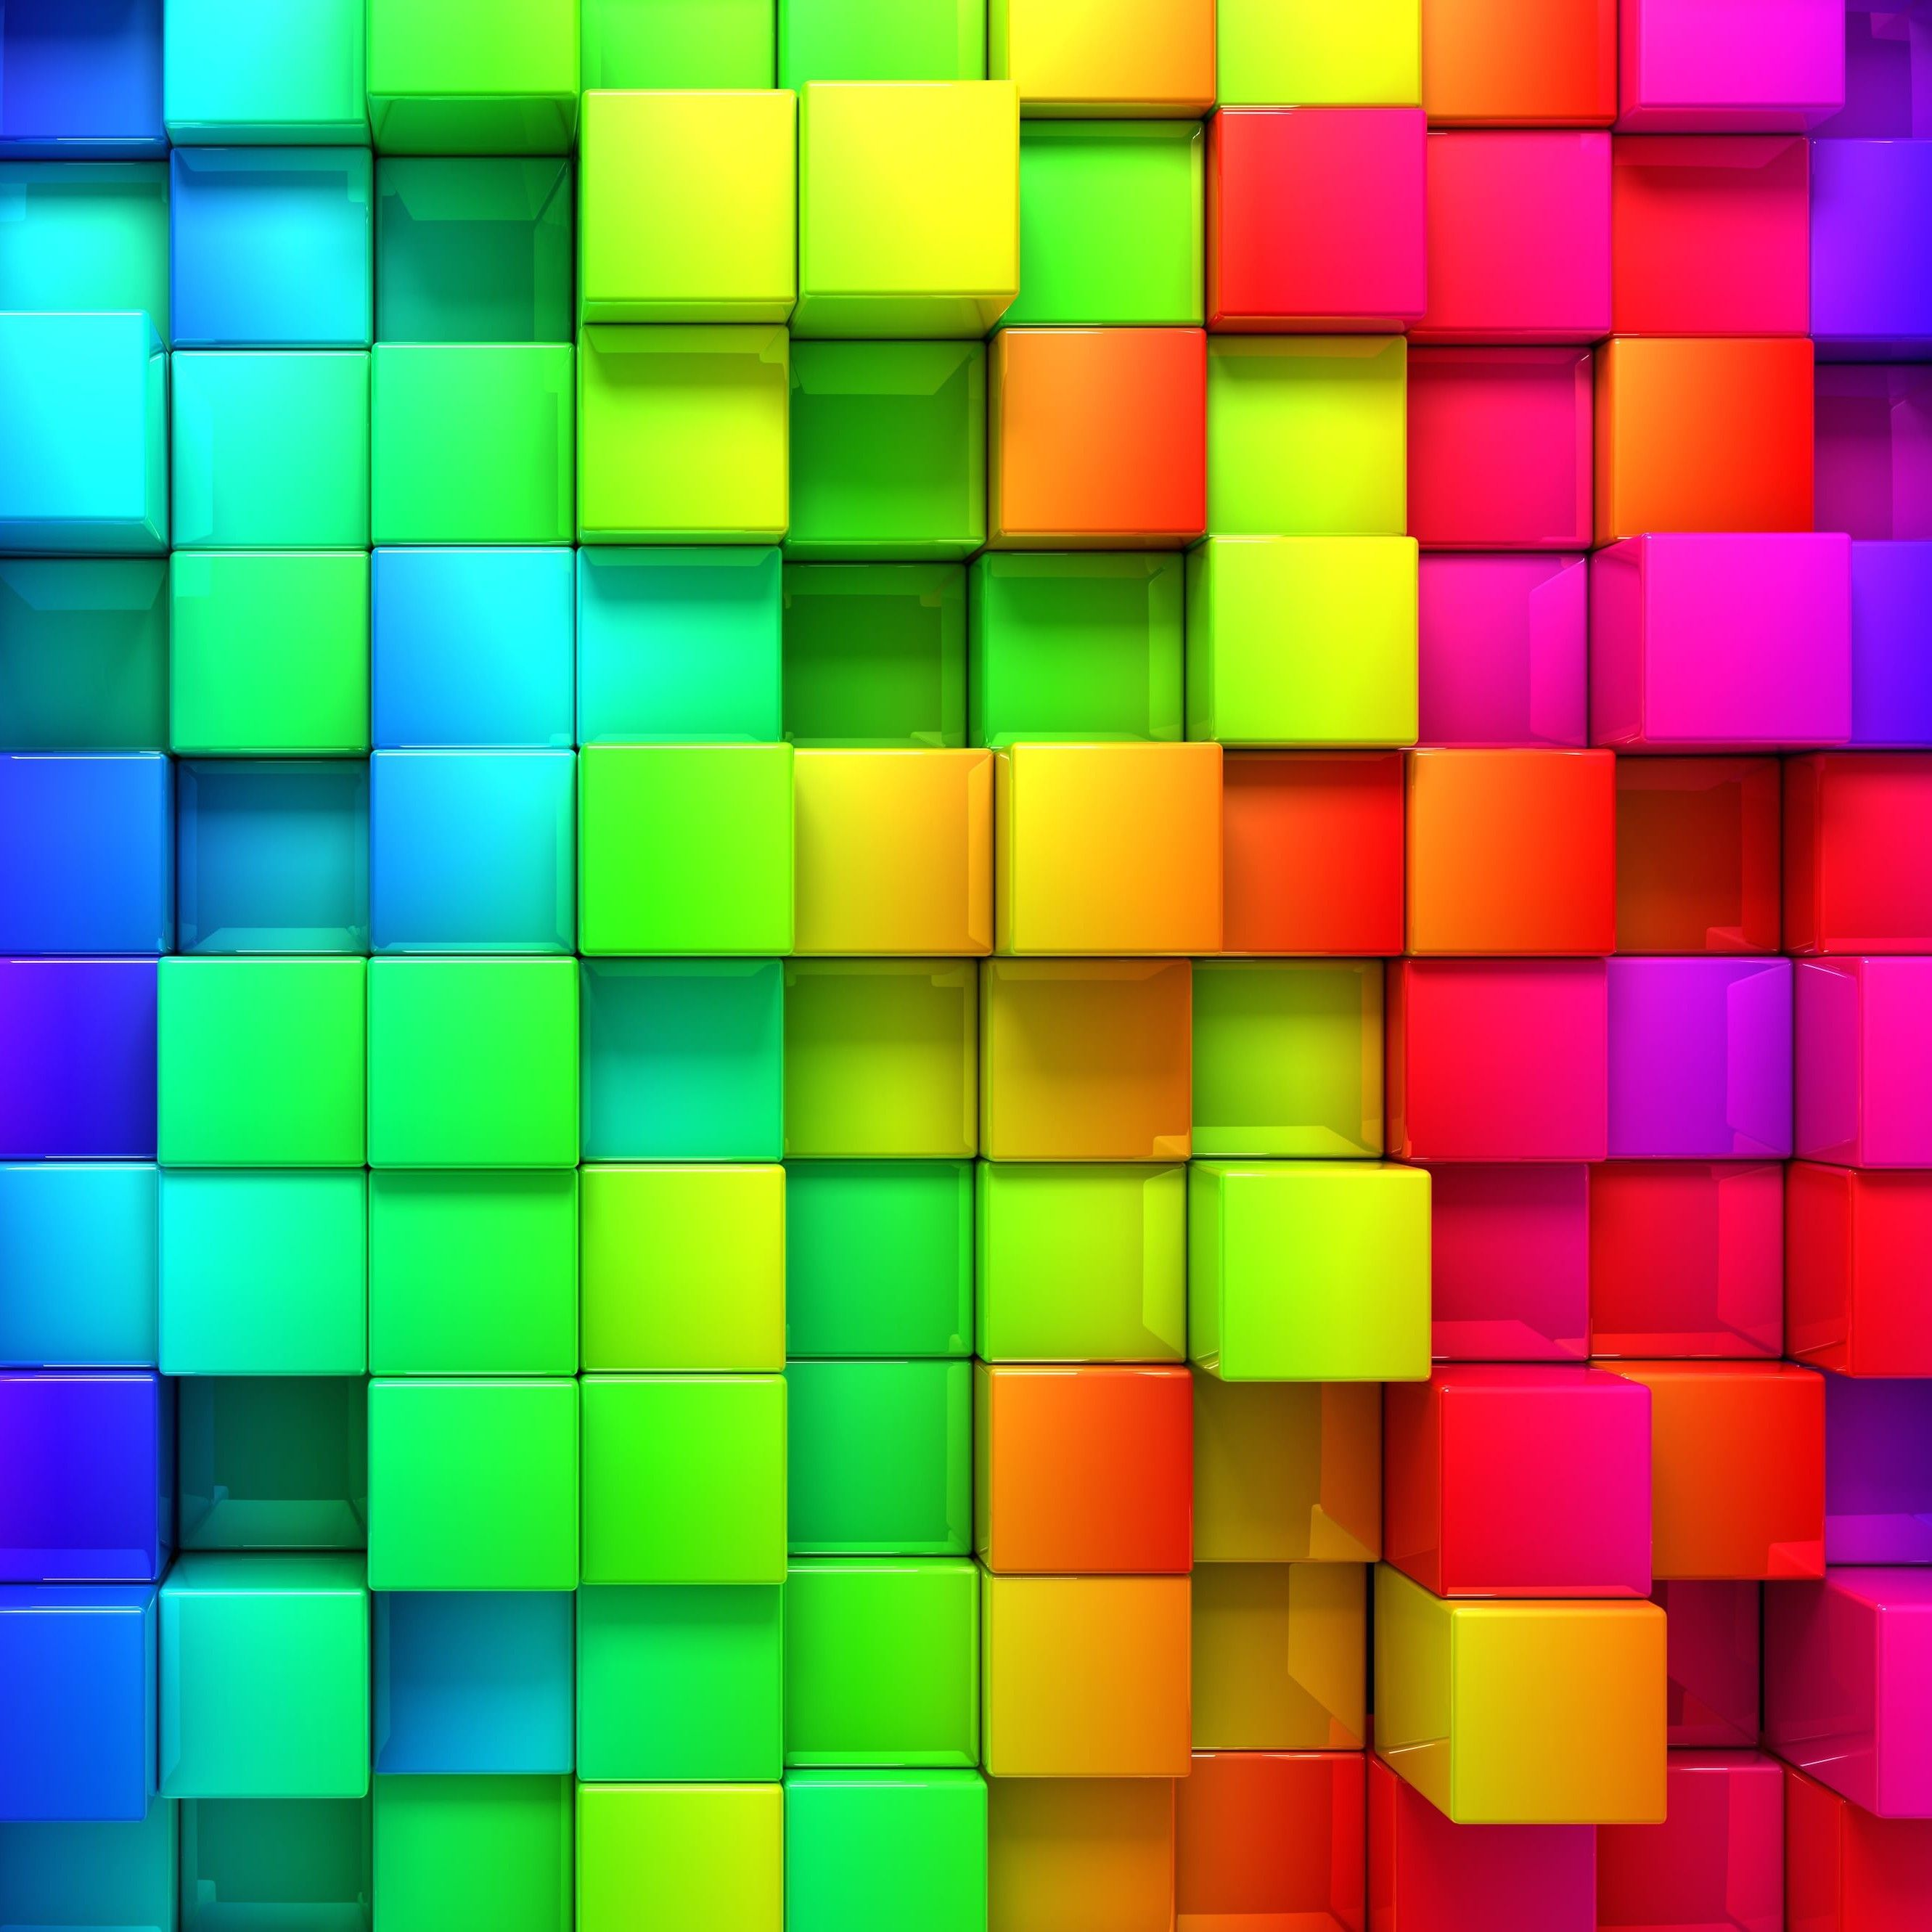 Hd wallpaper rainbow - Cubic Rainbow Hd Wallpaper For Iphone 6 Plus Hdwallpapers Net